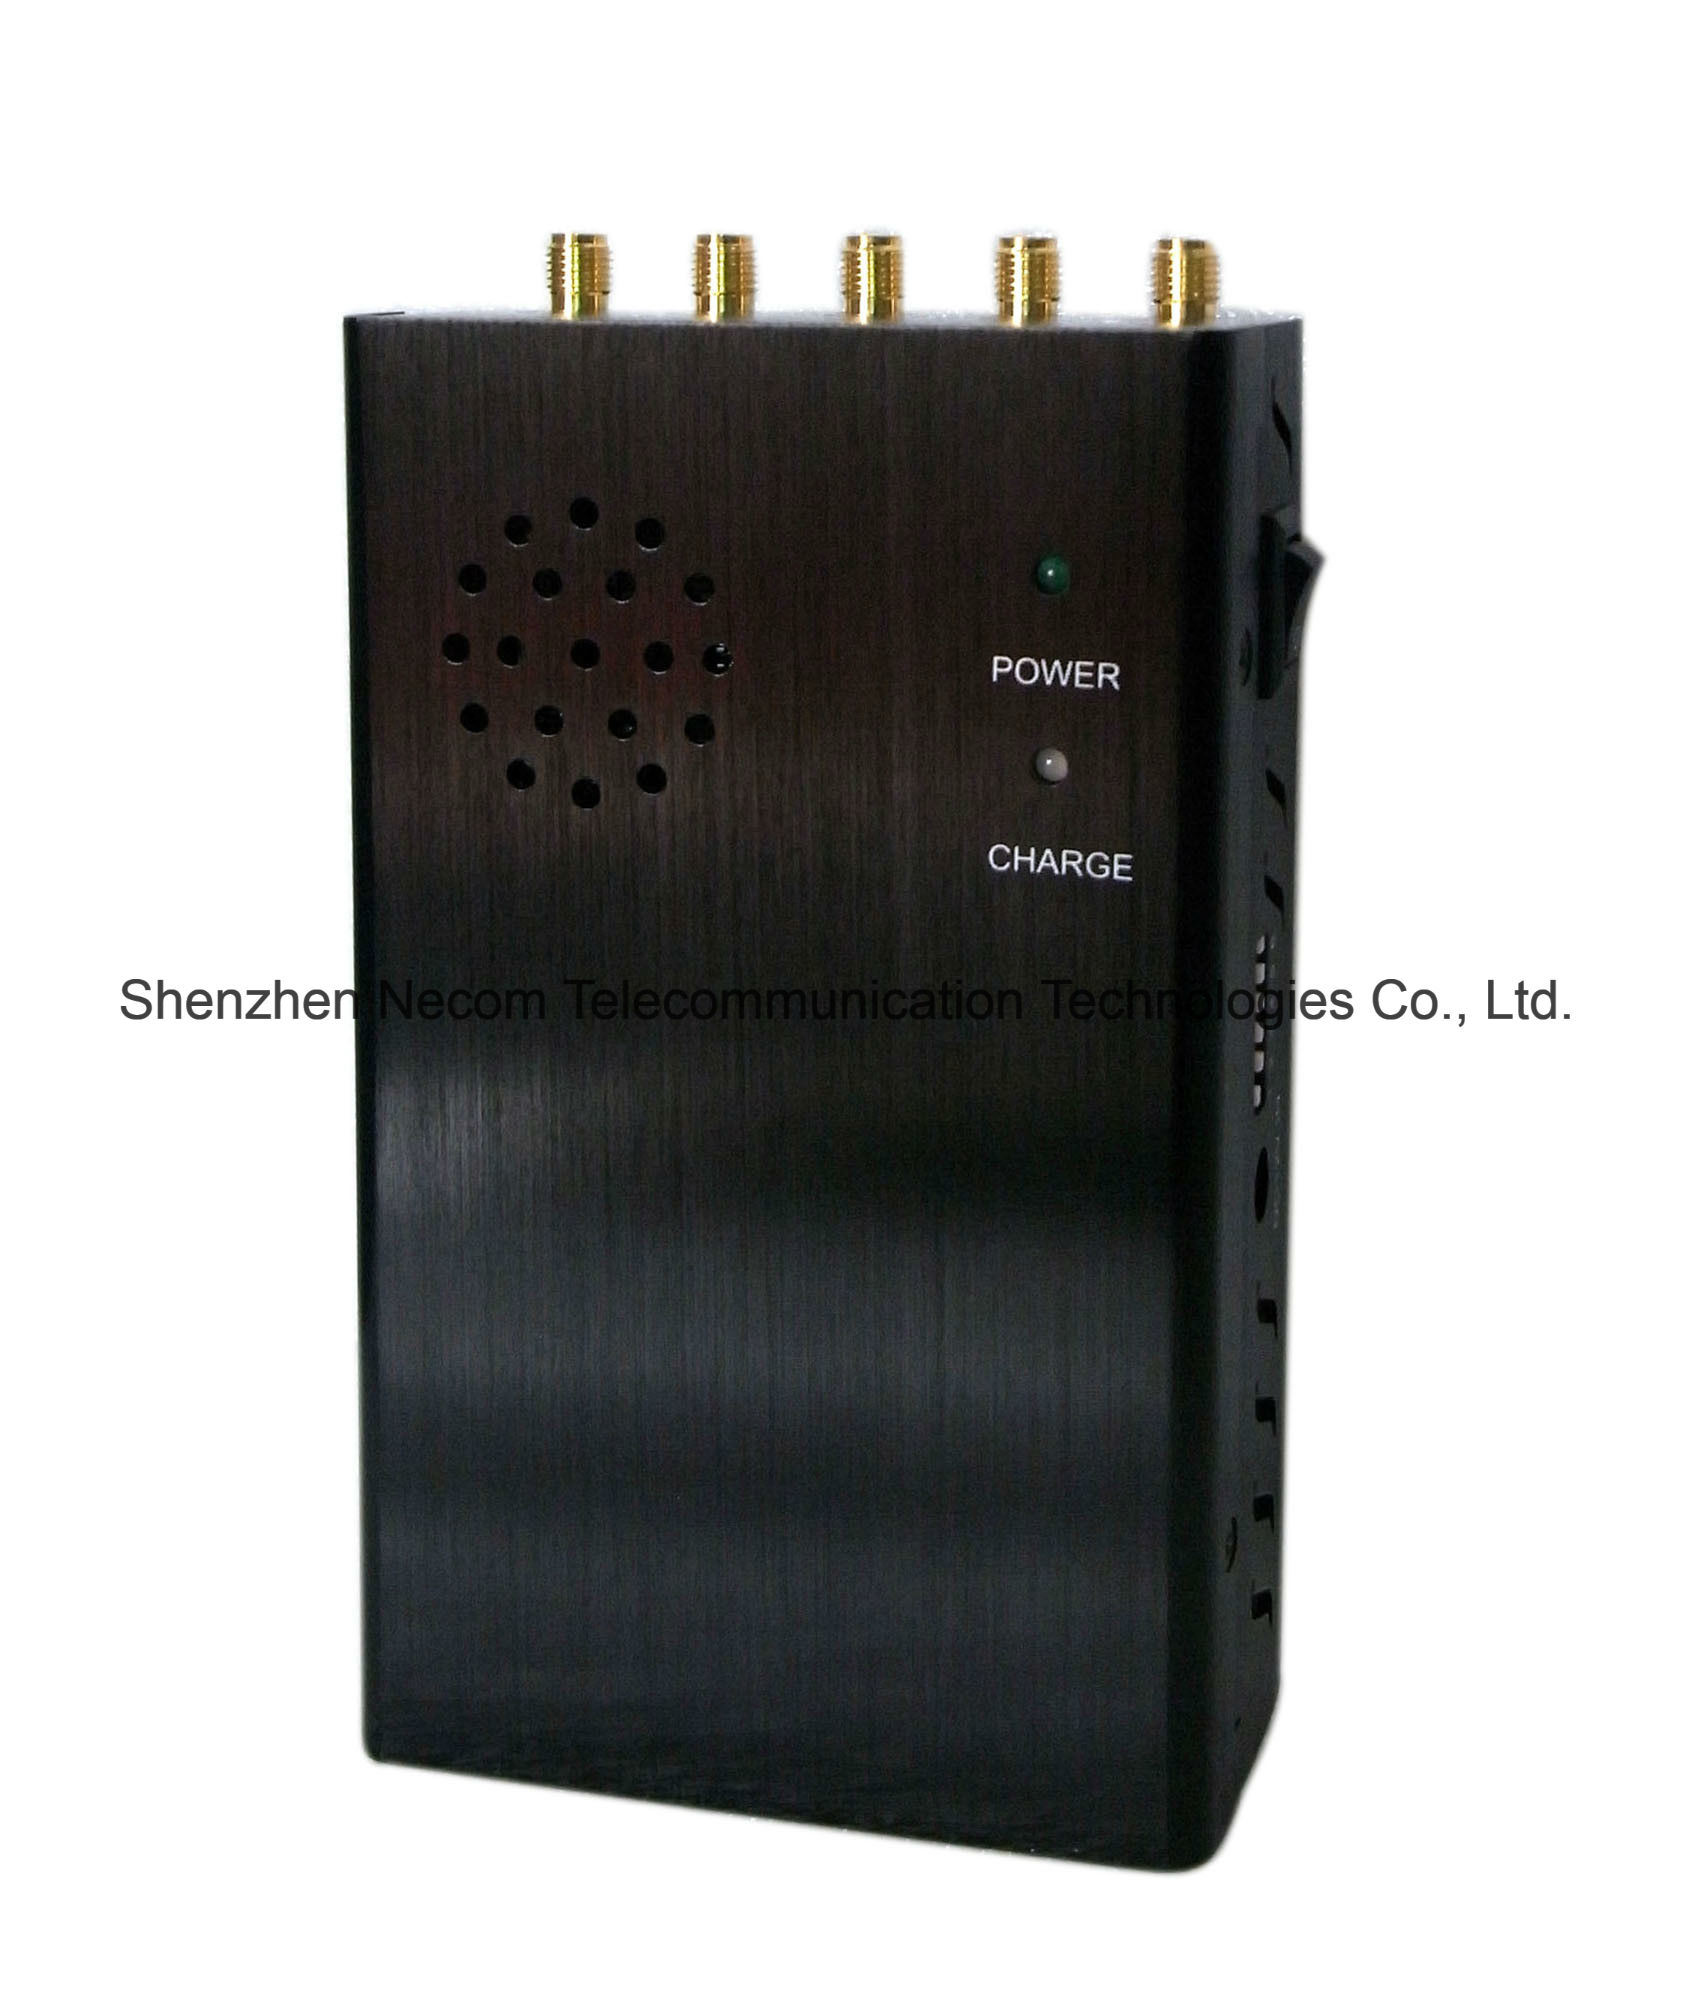 signal jammers news official site - China Wireless Signal Jammer with Good Quality&Favourable Price Jamming for Wired Camera, GPS Tracker, Mobile Phones, GSM Jammer/GPS Jammer /Cell Phone Jammer - China 5 Band Signal Blockers, Five Antennas Jammers